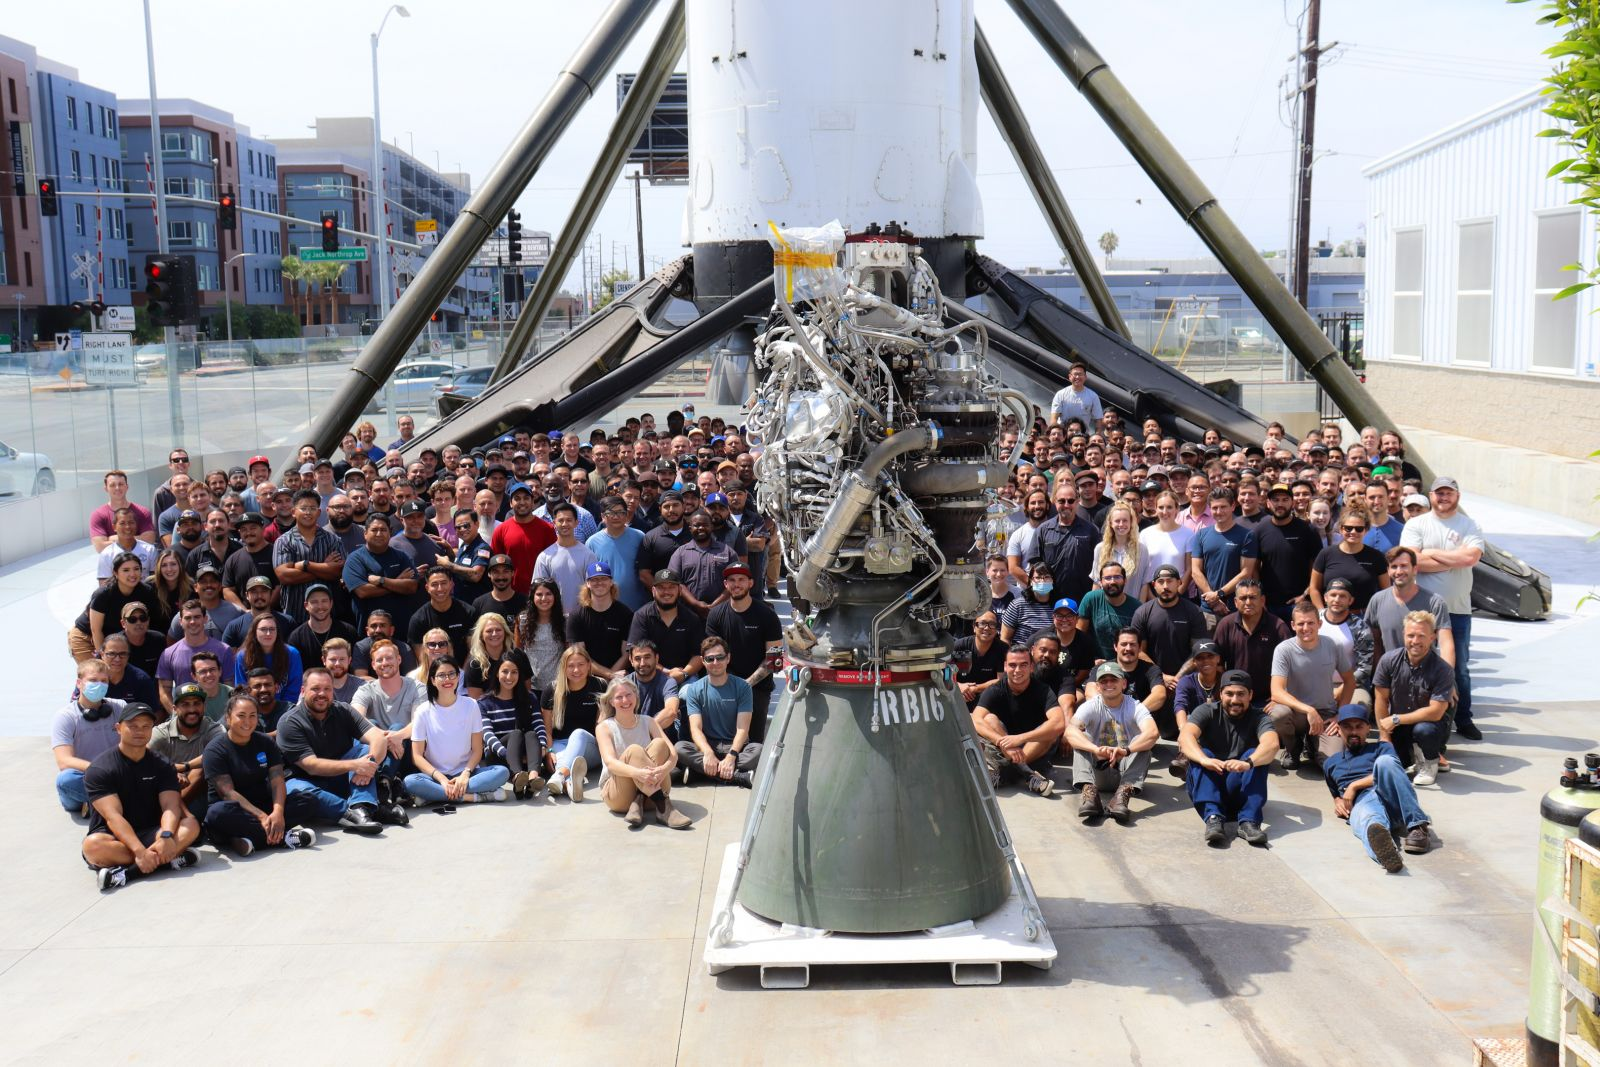 SpaceX employees pose around the 100th build of a Raptor engine at the company's factory in Hawthorne, California. Credit: SpaceX